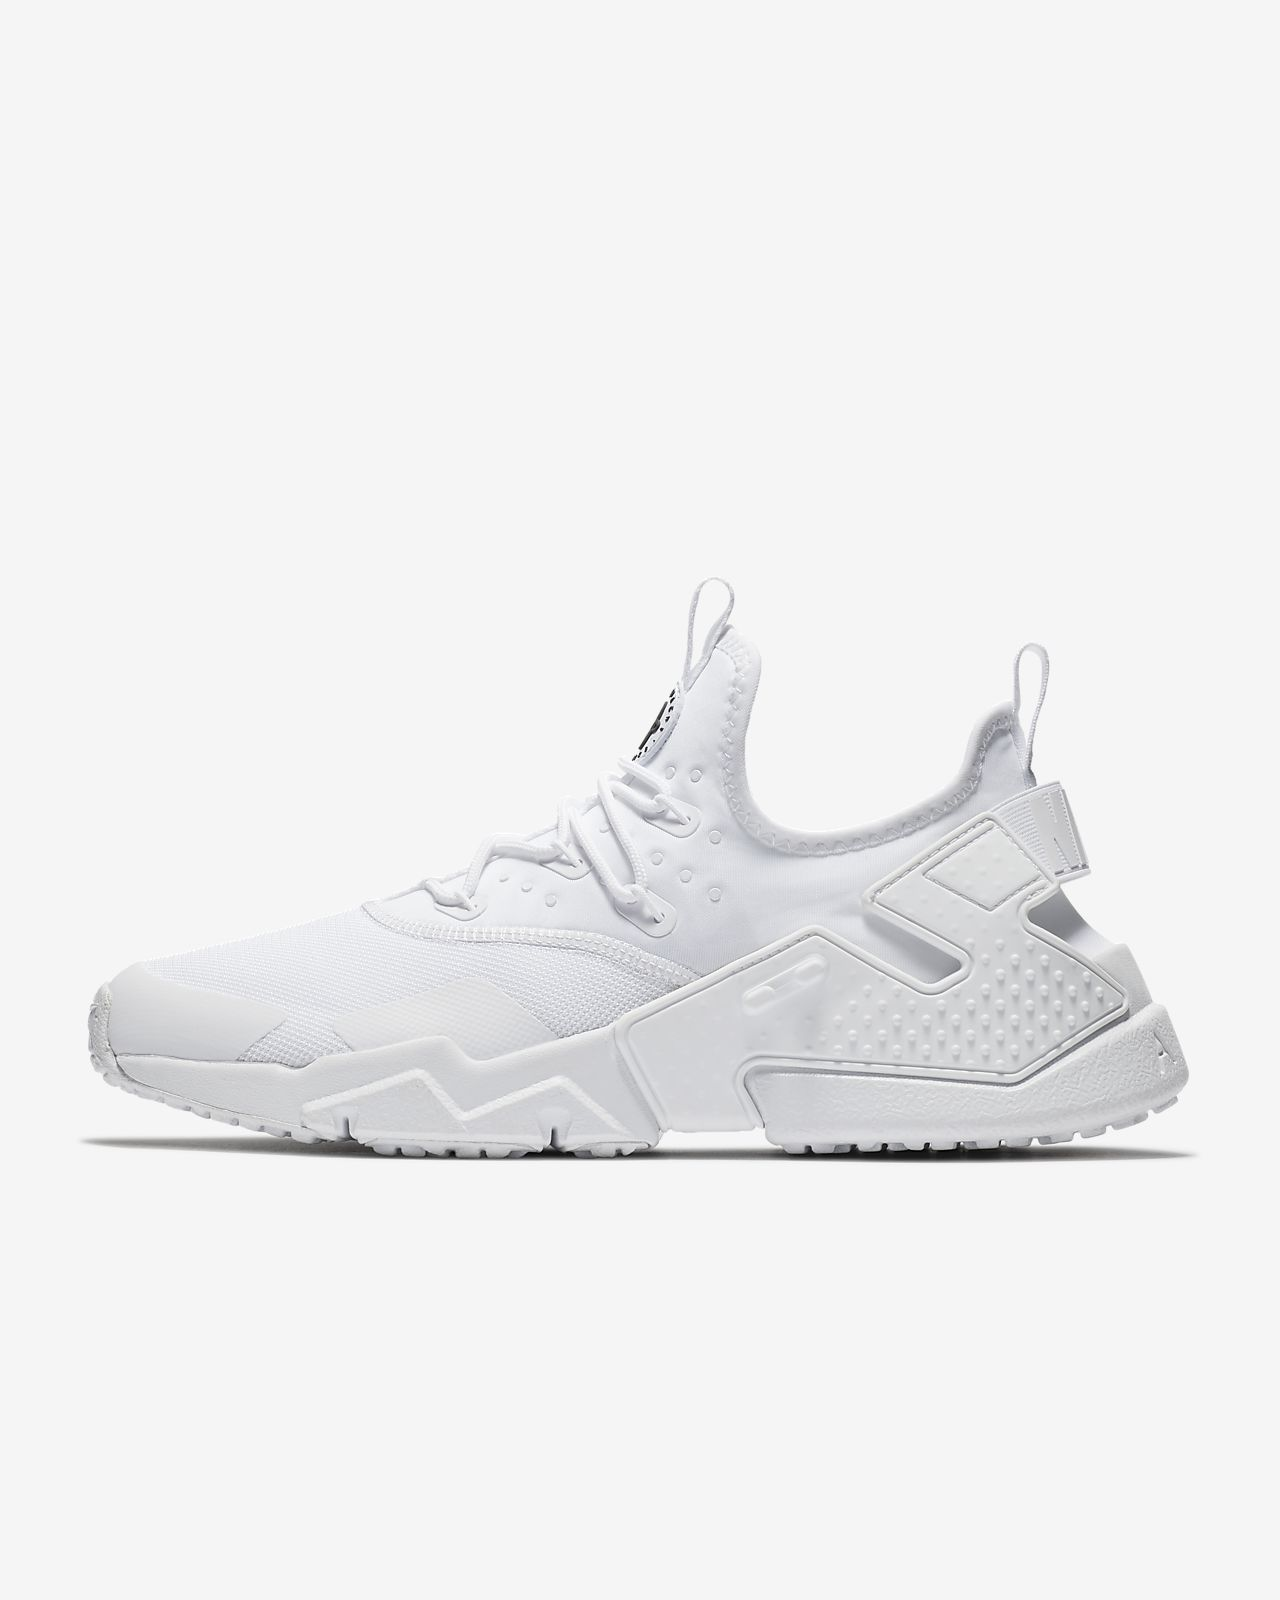 2e53d73e14 Nike Air Huarache Drift Men s Shoe. Nike.com